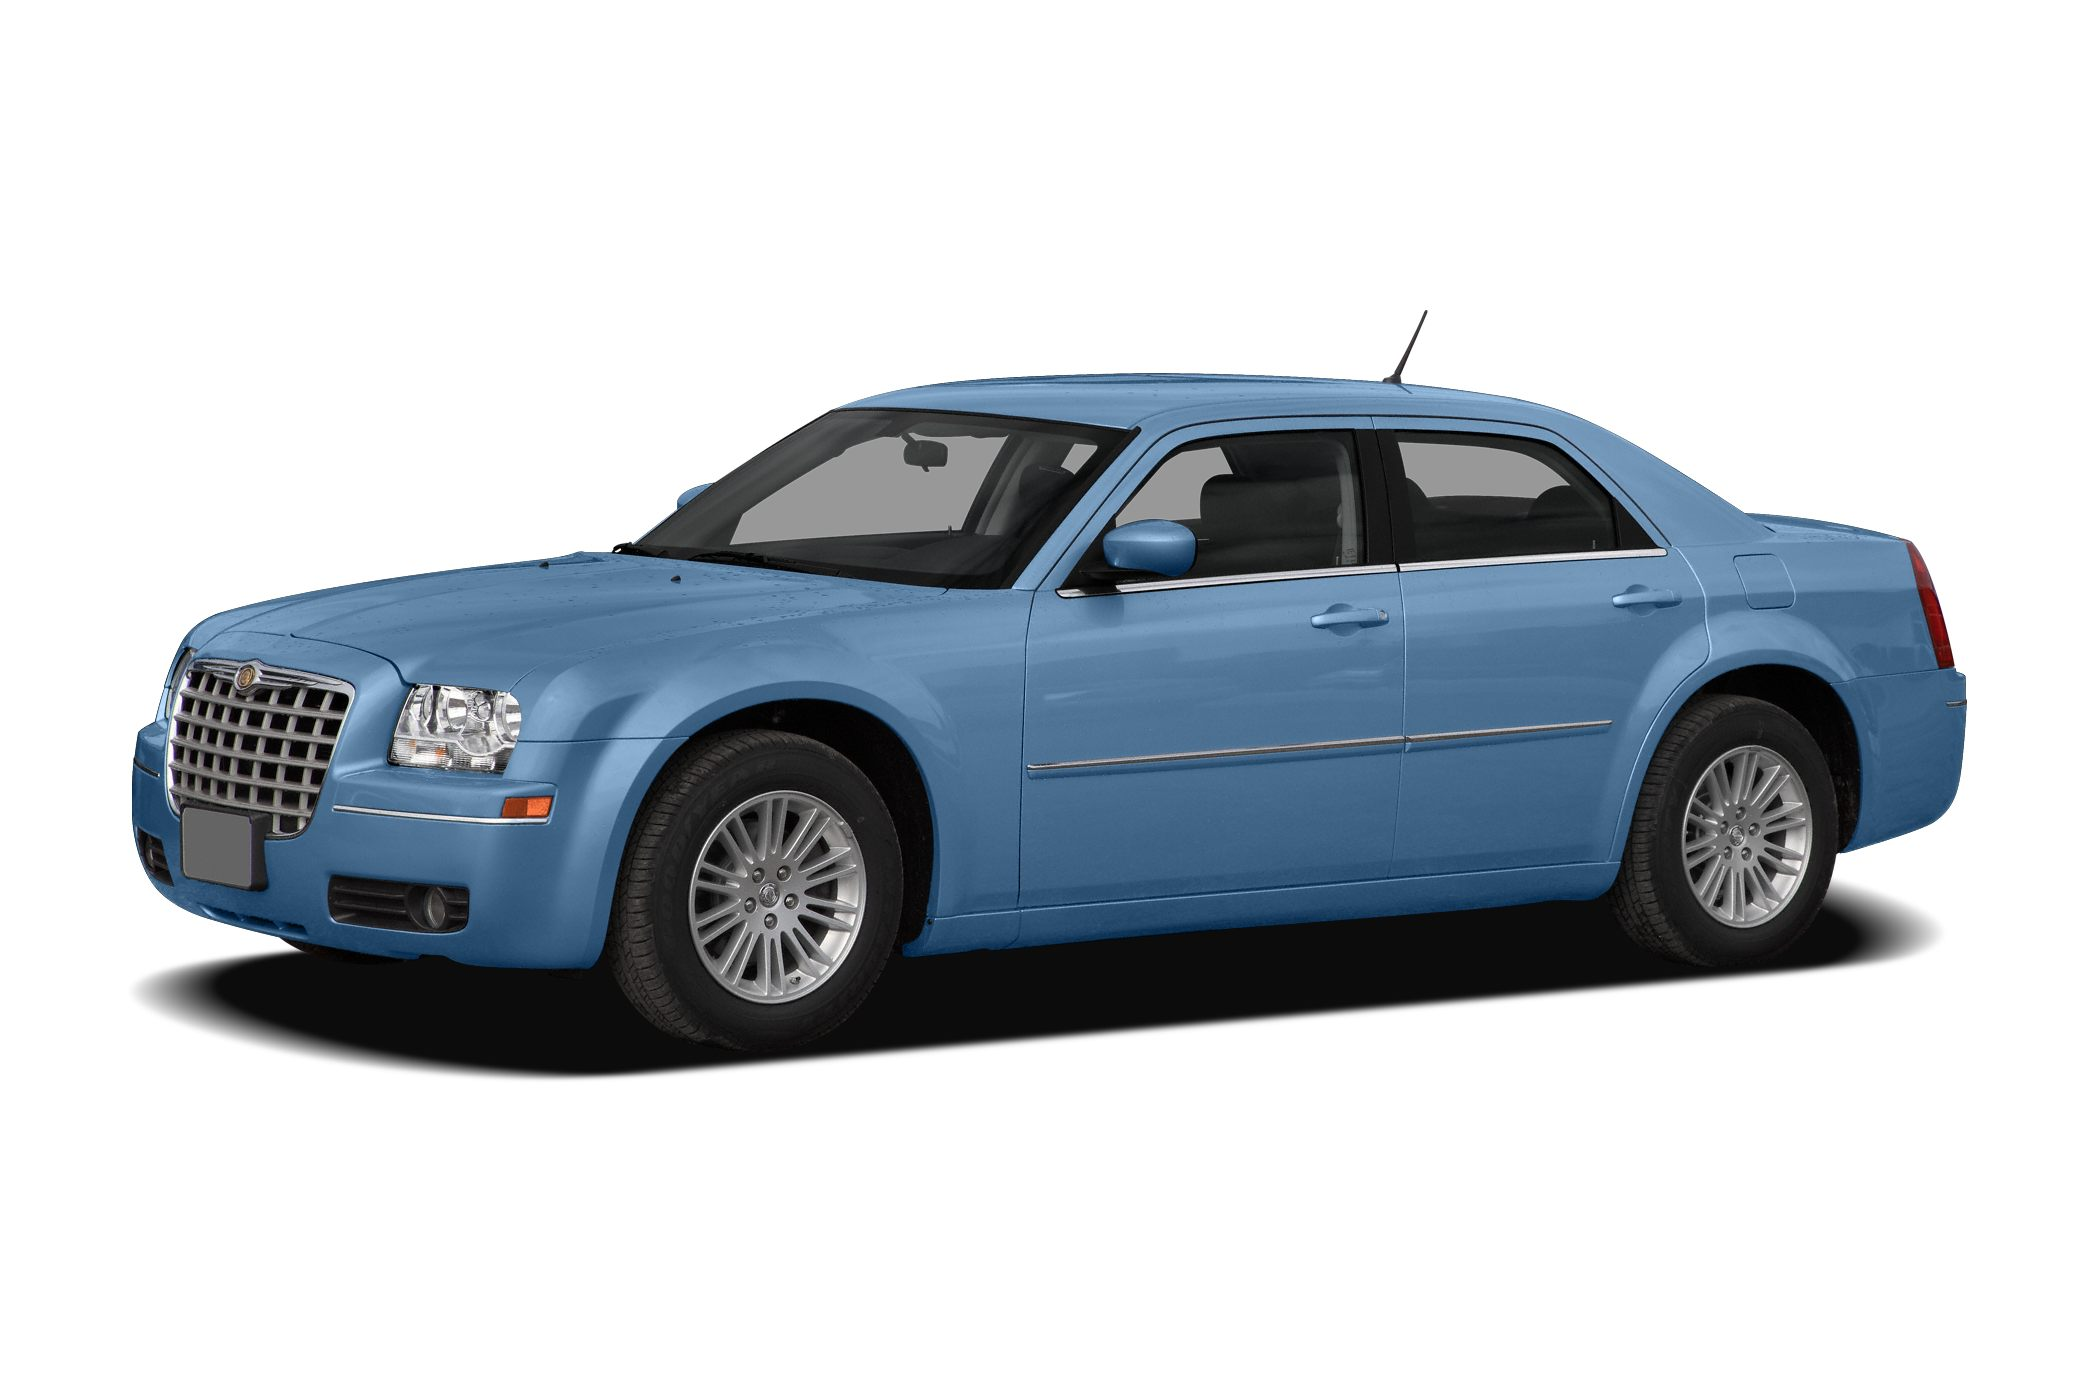 2008 Chrysler 300 Limited Sedan for sale in Columbia for $12,995 with 90,650 miles